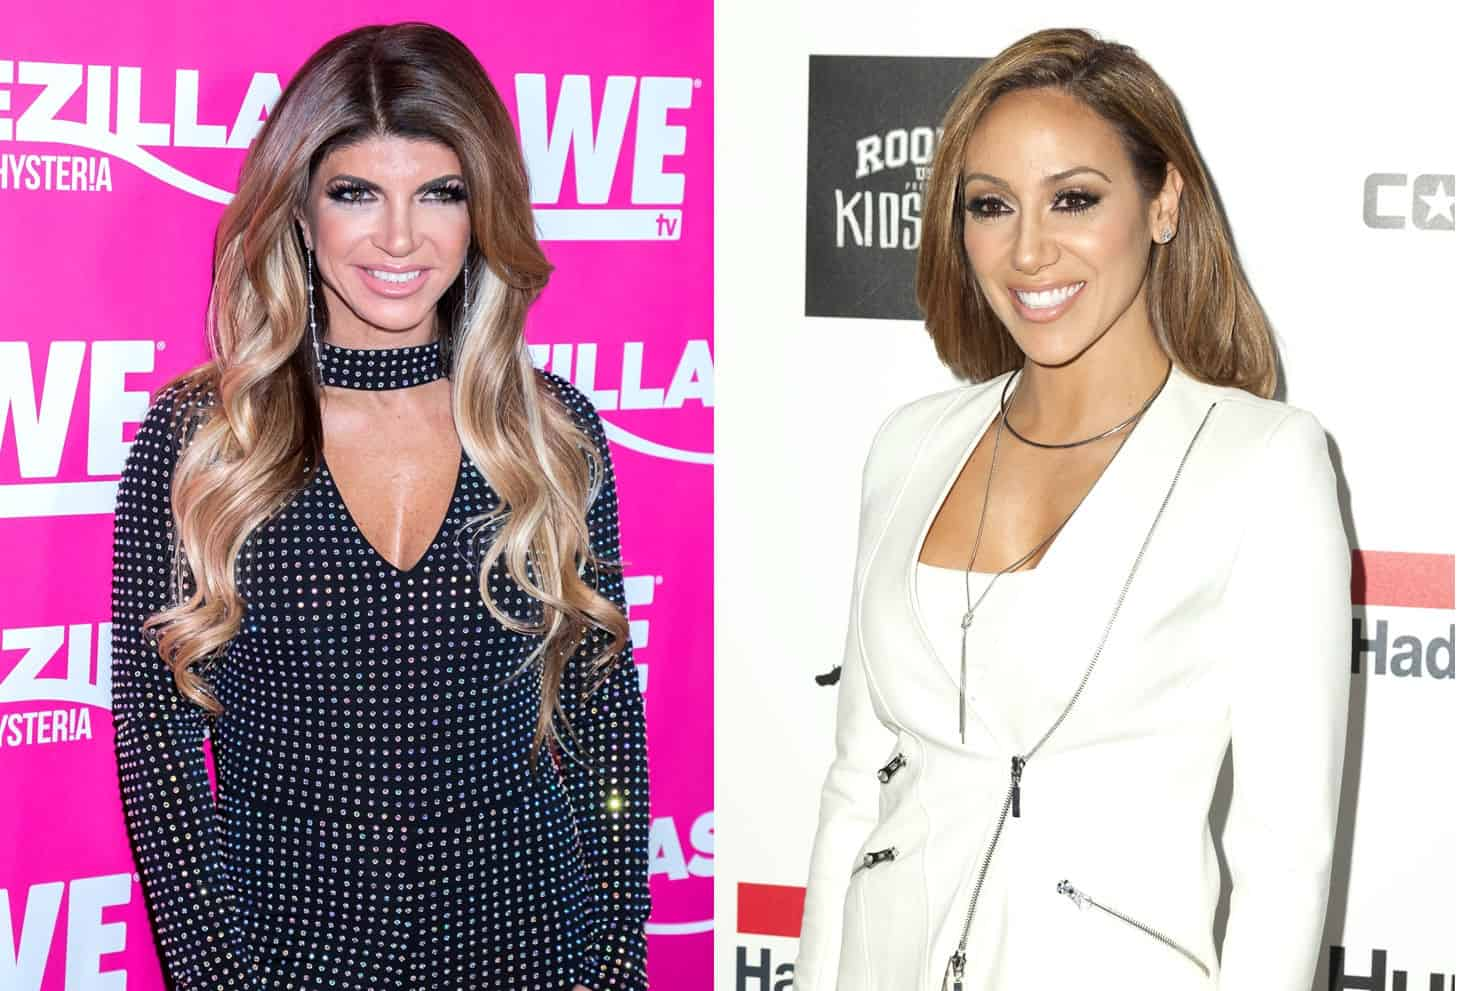 RHONJ's Melissa Gorga Discusses Fighting with Teresa Giudice